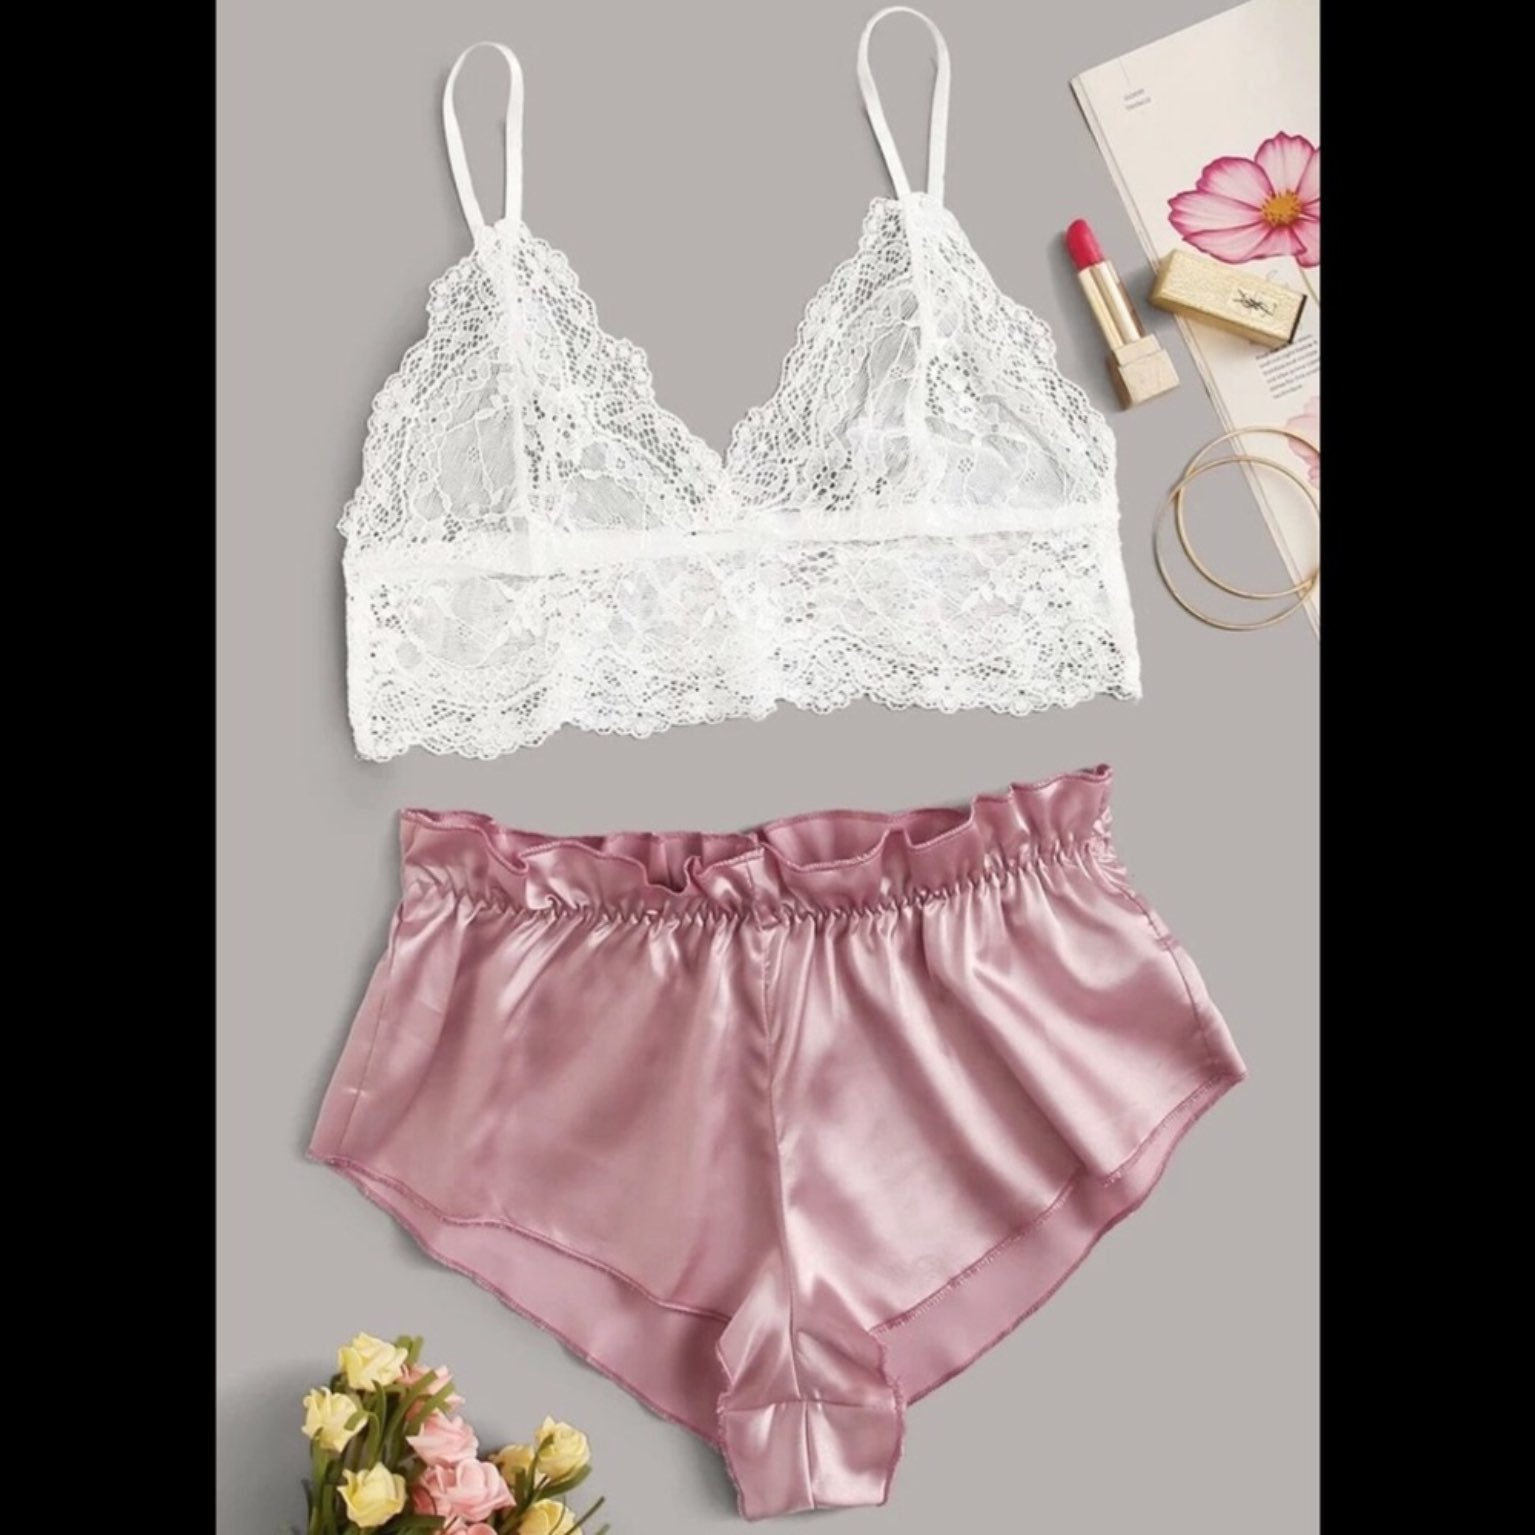 Pink & White, Lace & Satin, Lingerie Set